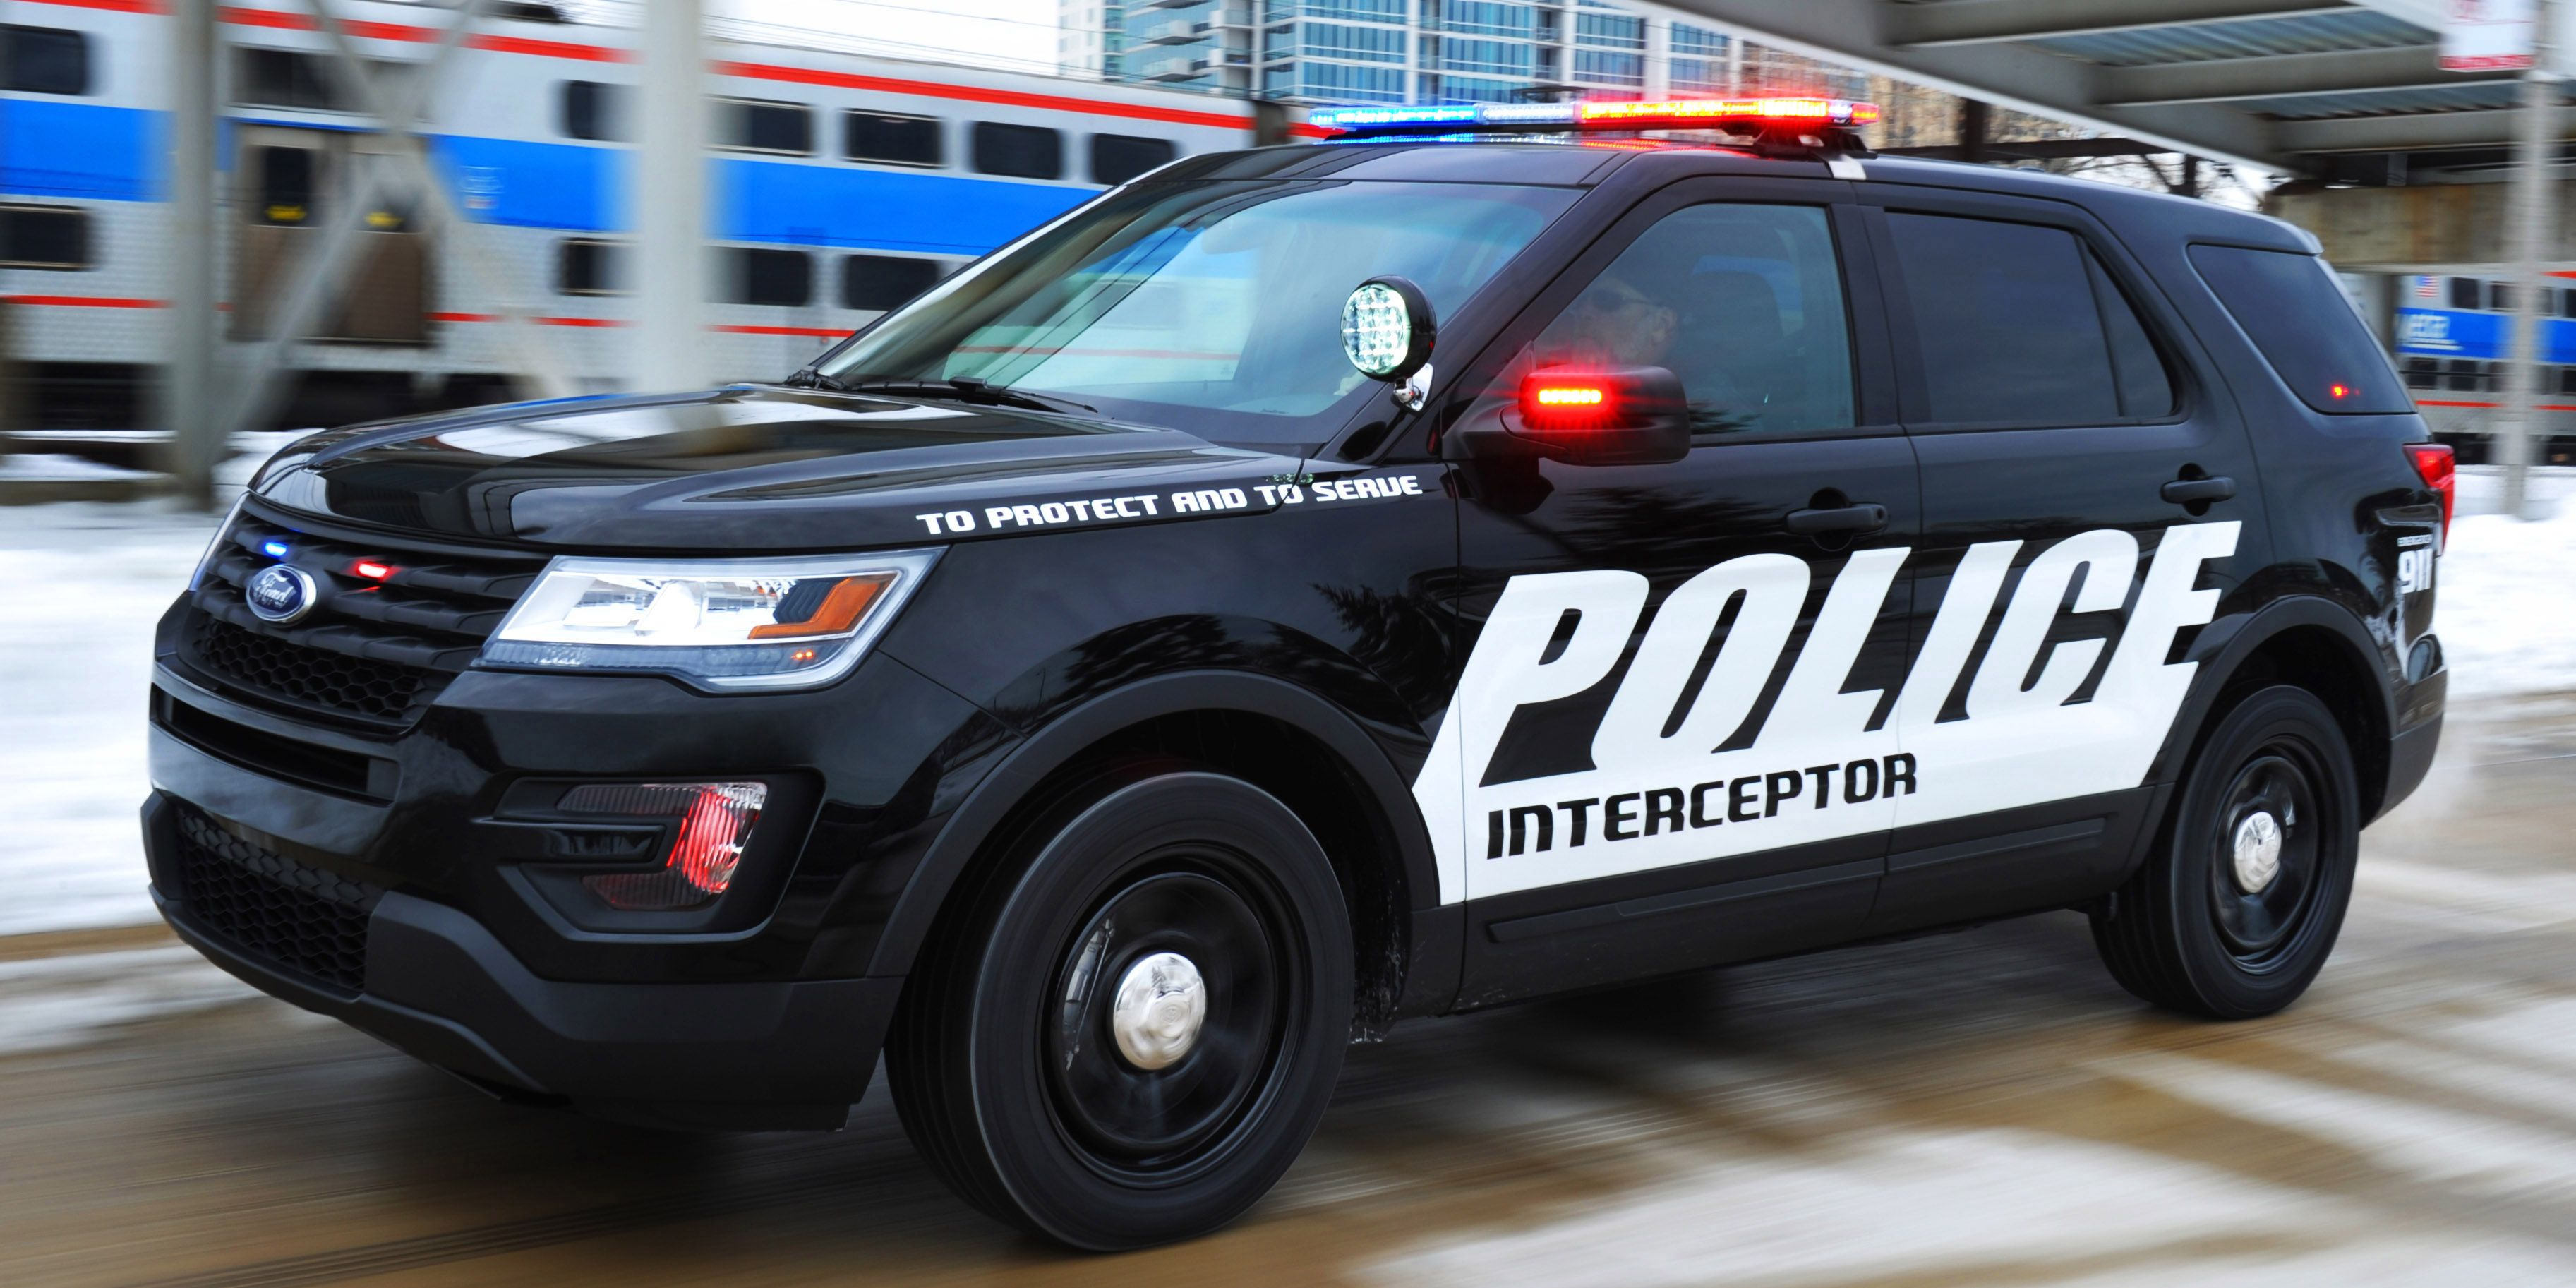 & The 2016 Ford Police Interceptor Utility is here markmcfarlin.com